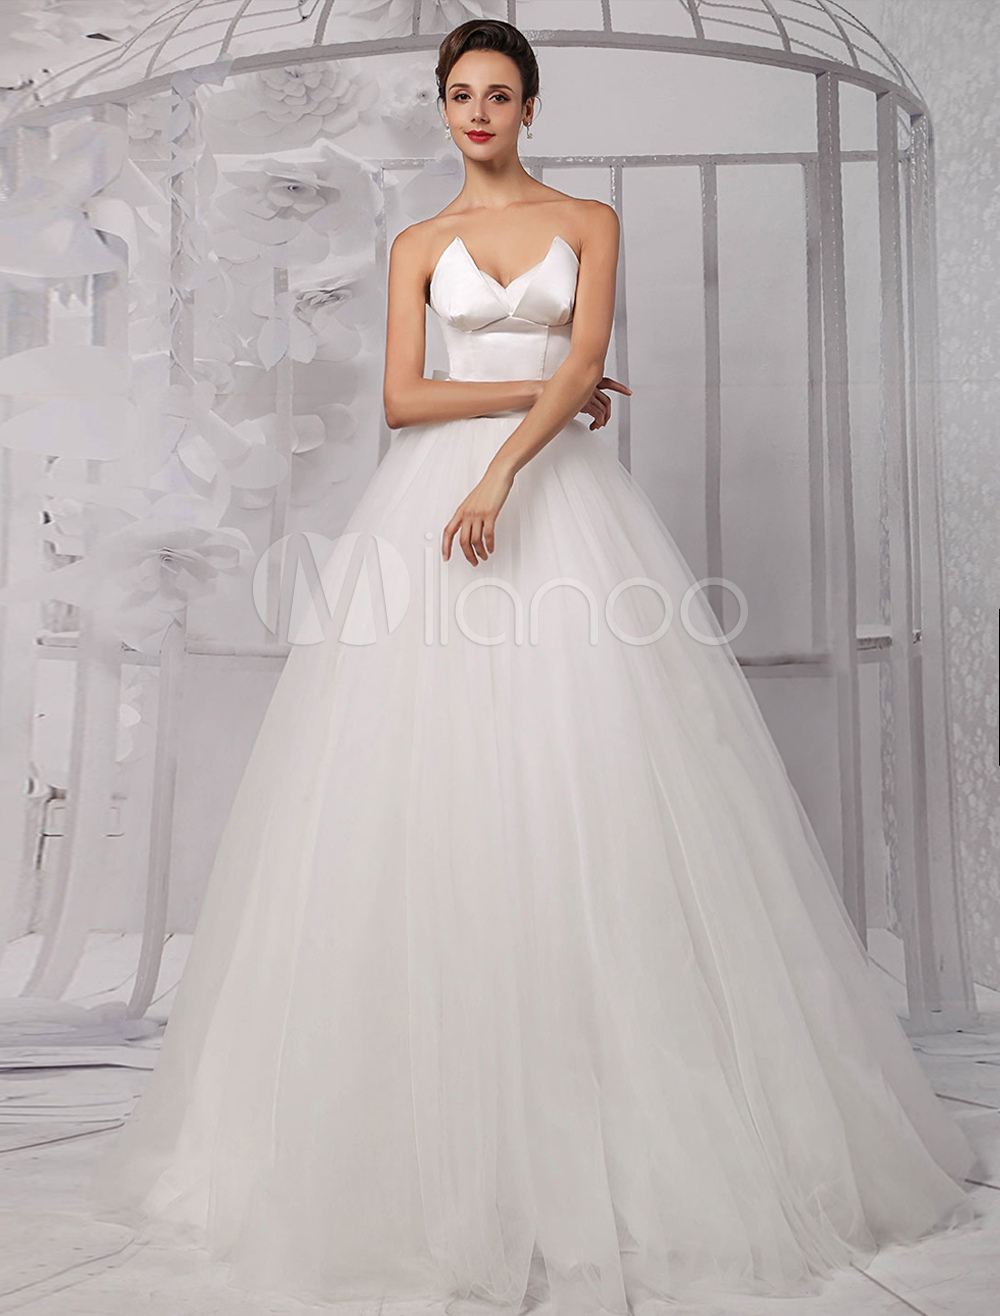 Two Pieces Crop Top Ball Gown Wedding Dress With Tulle Skirt Milanoo